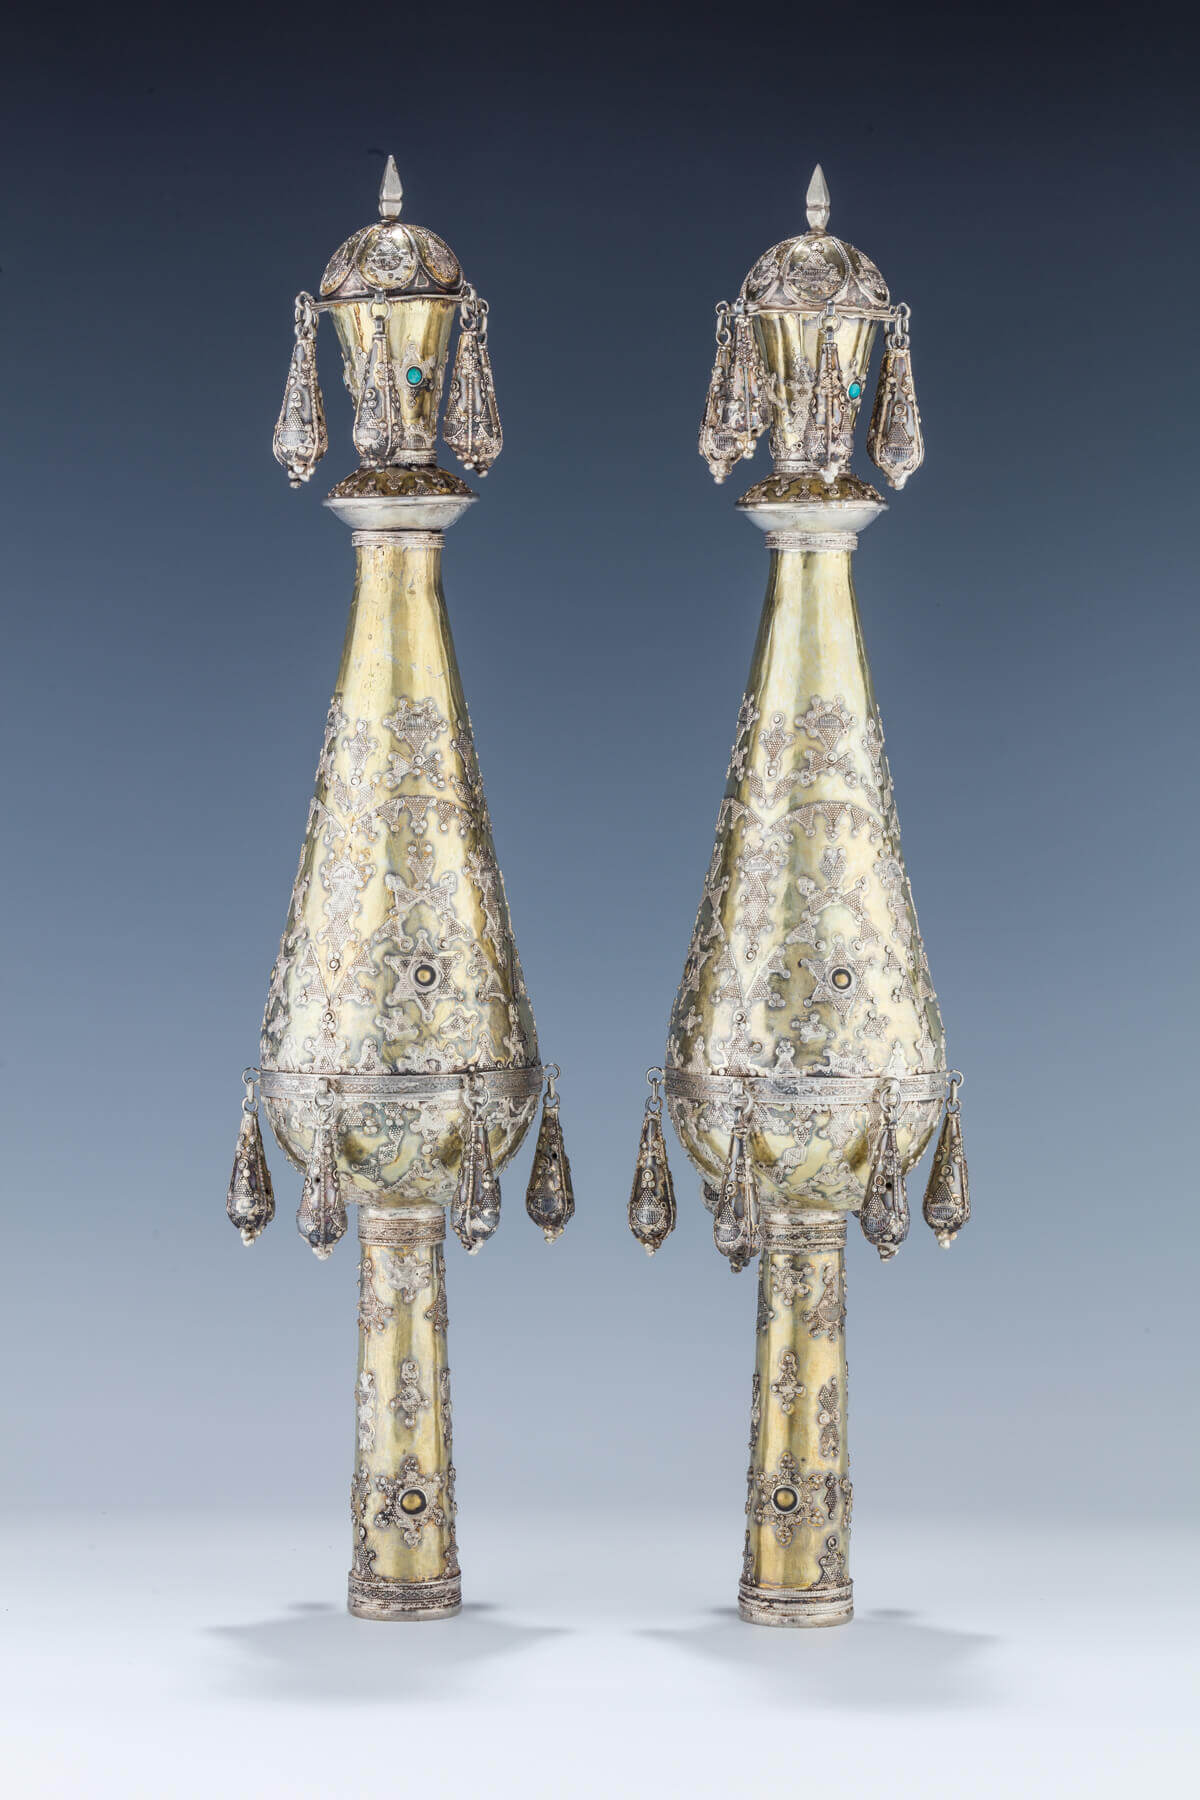 088. A PAIR OF GILDED SILVER TORAH FINIALS